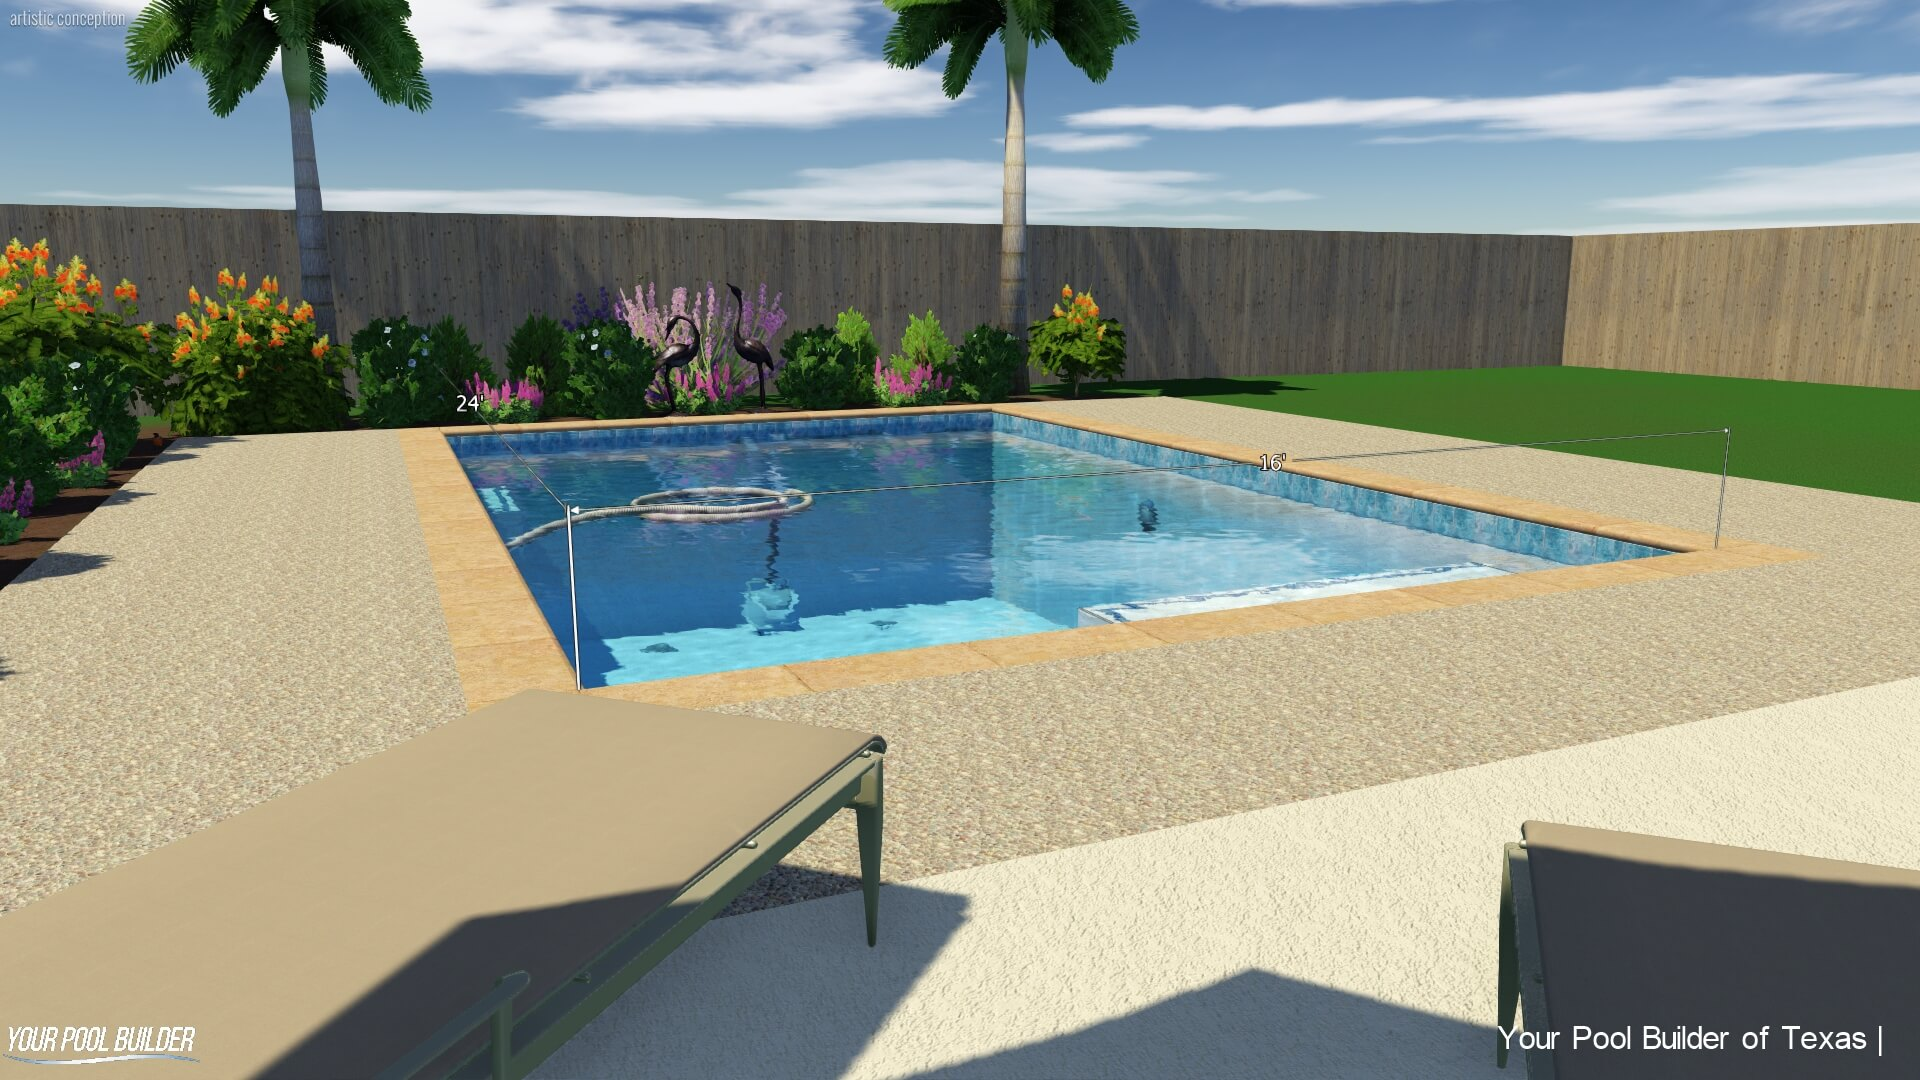 Basic Pool Construction Package | Texas New Pool Installation Cost